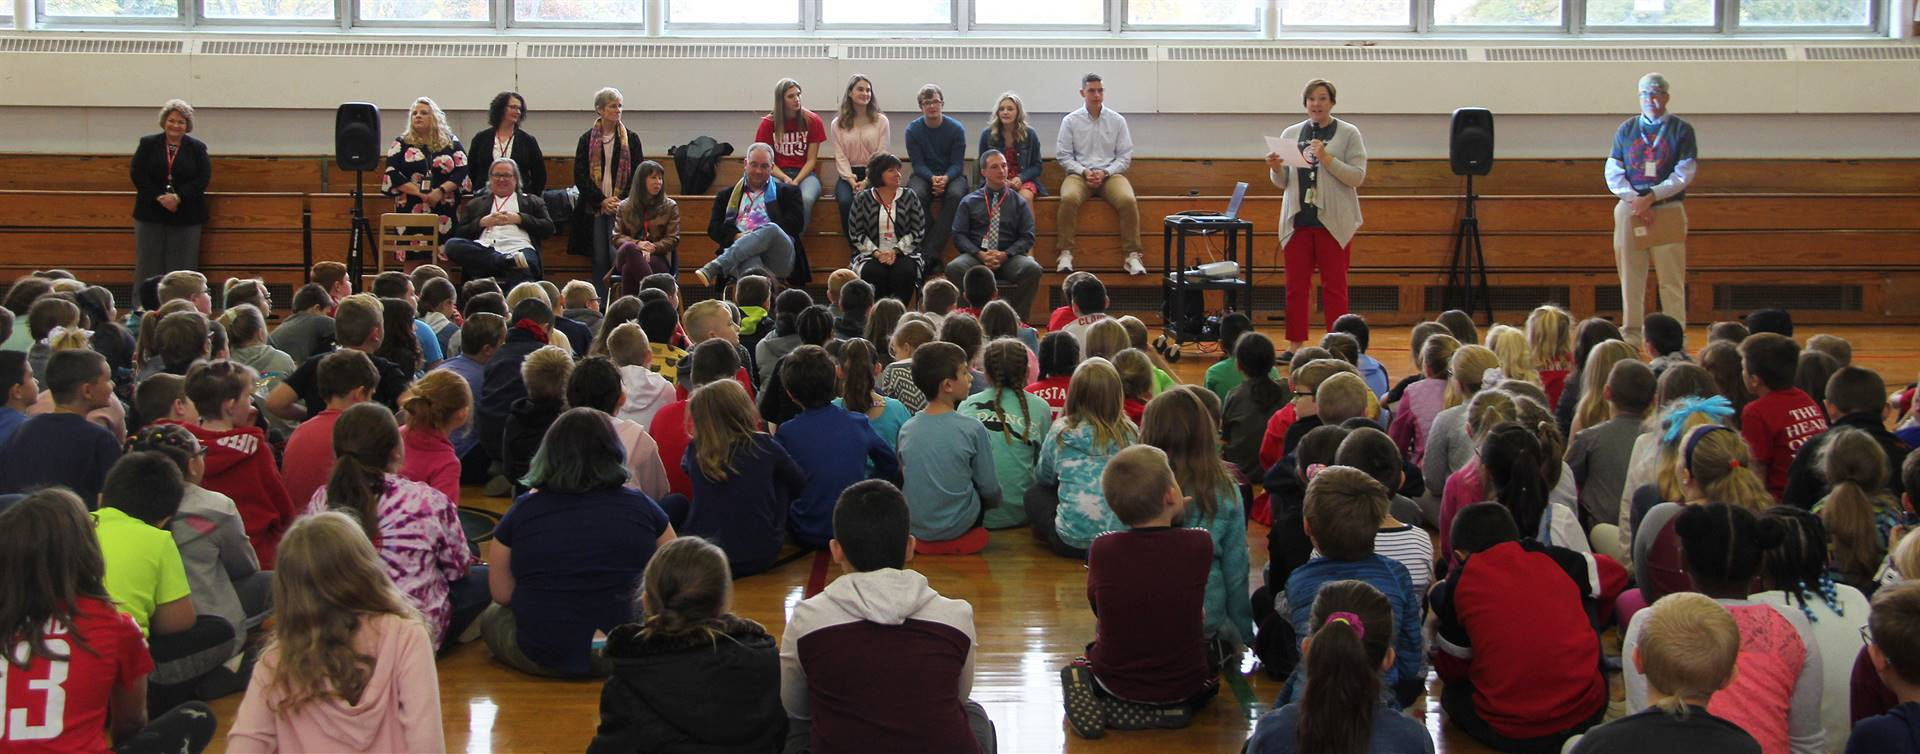 people in gymnasium for presentation